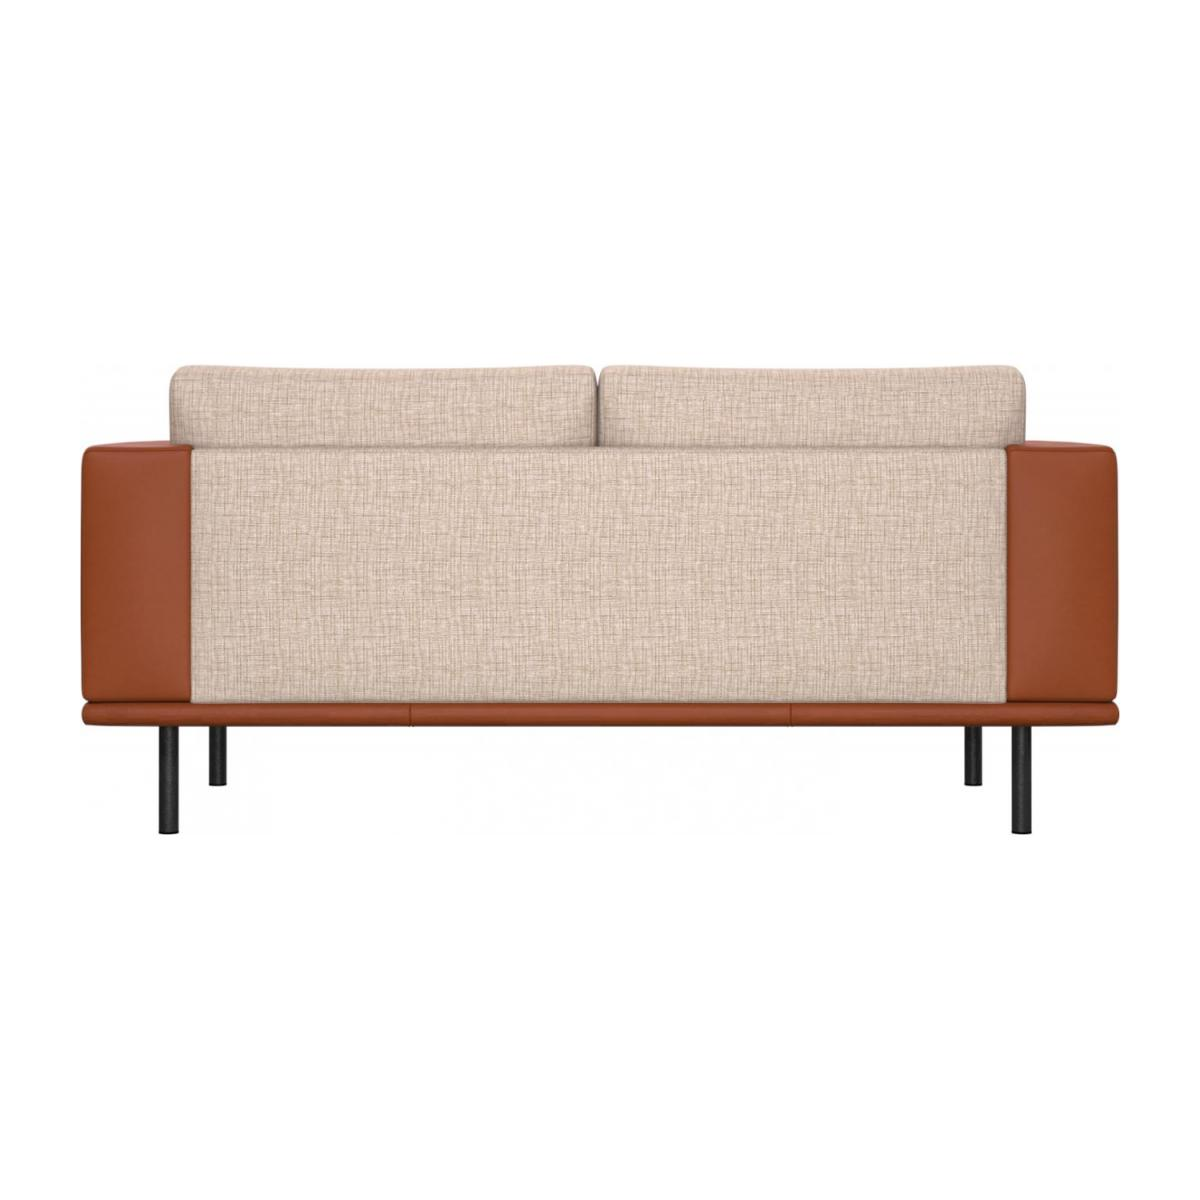 2 seater sofa in Ancio fabric, nature with base and armrests in brown leather n°3